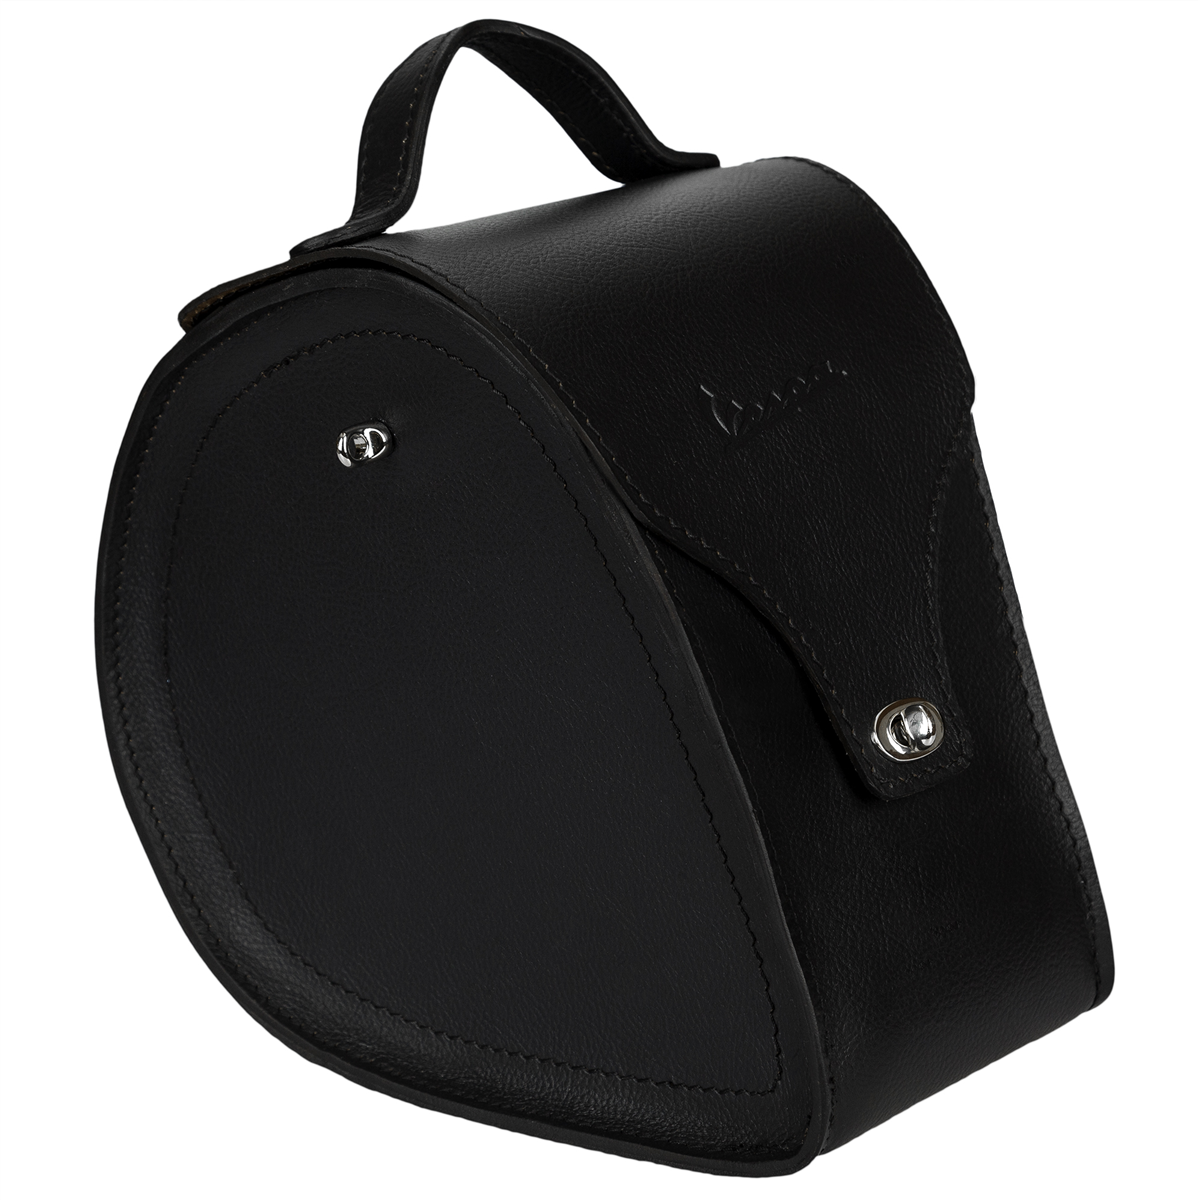 TUNNEL BAG FOR VESPA PX